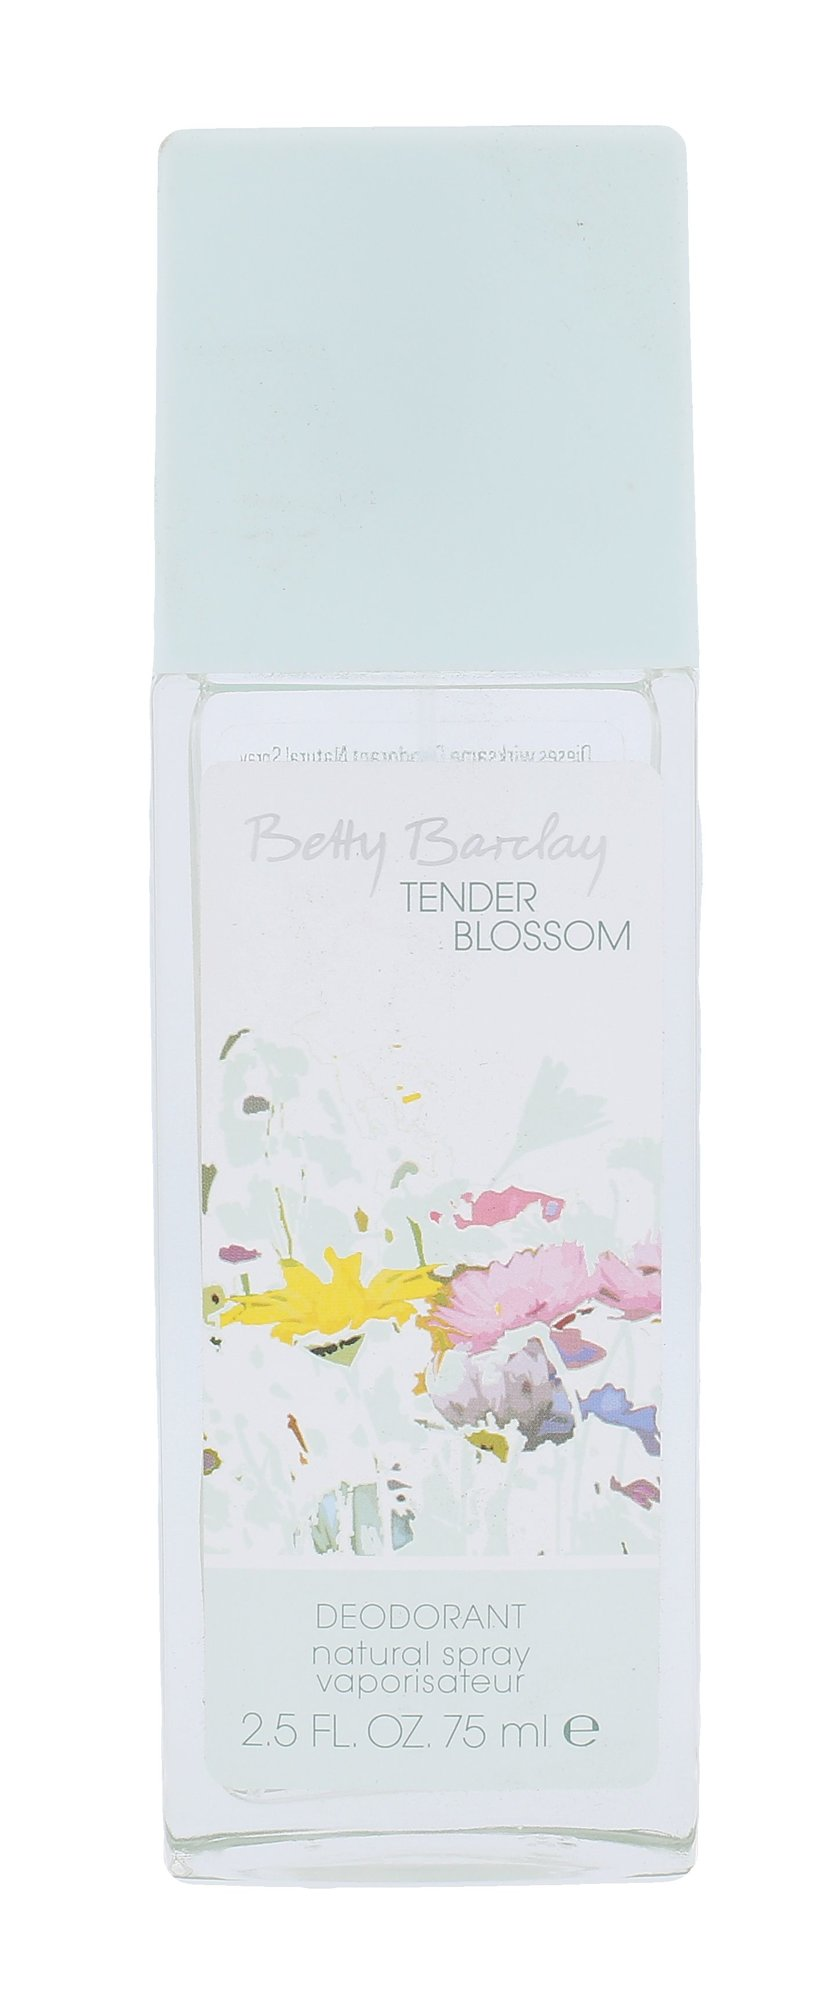 Betty Barclay Tender Blossom Deodorant 75ml